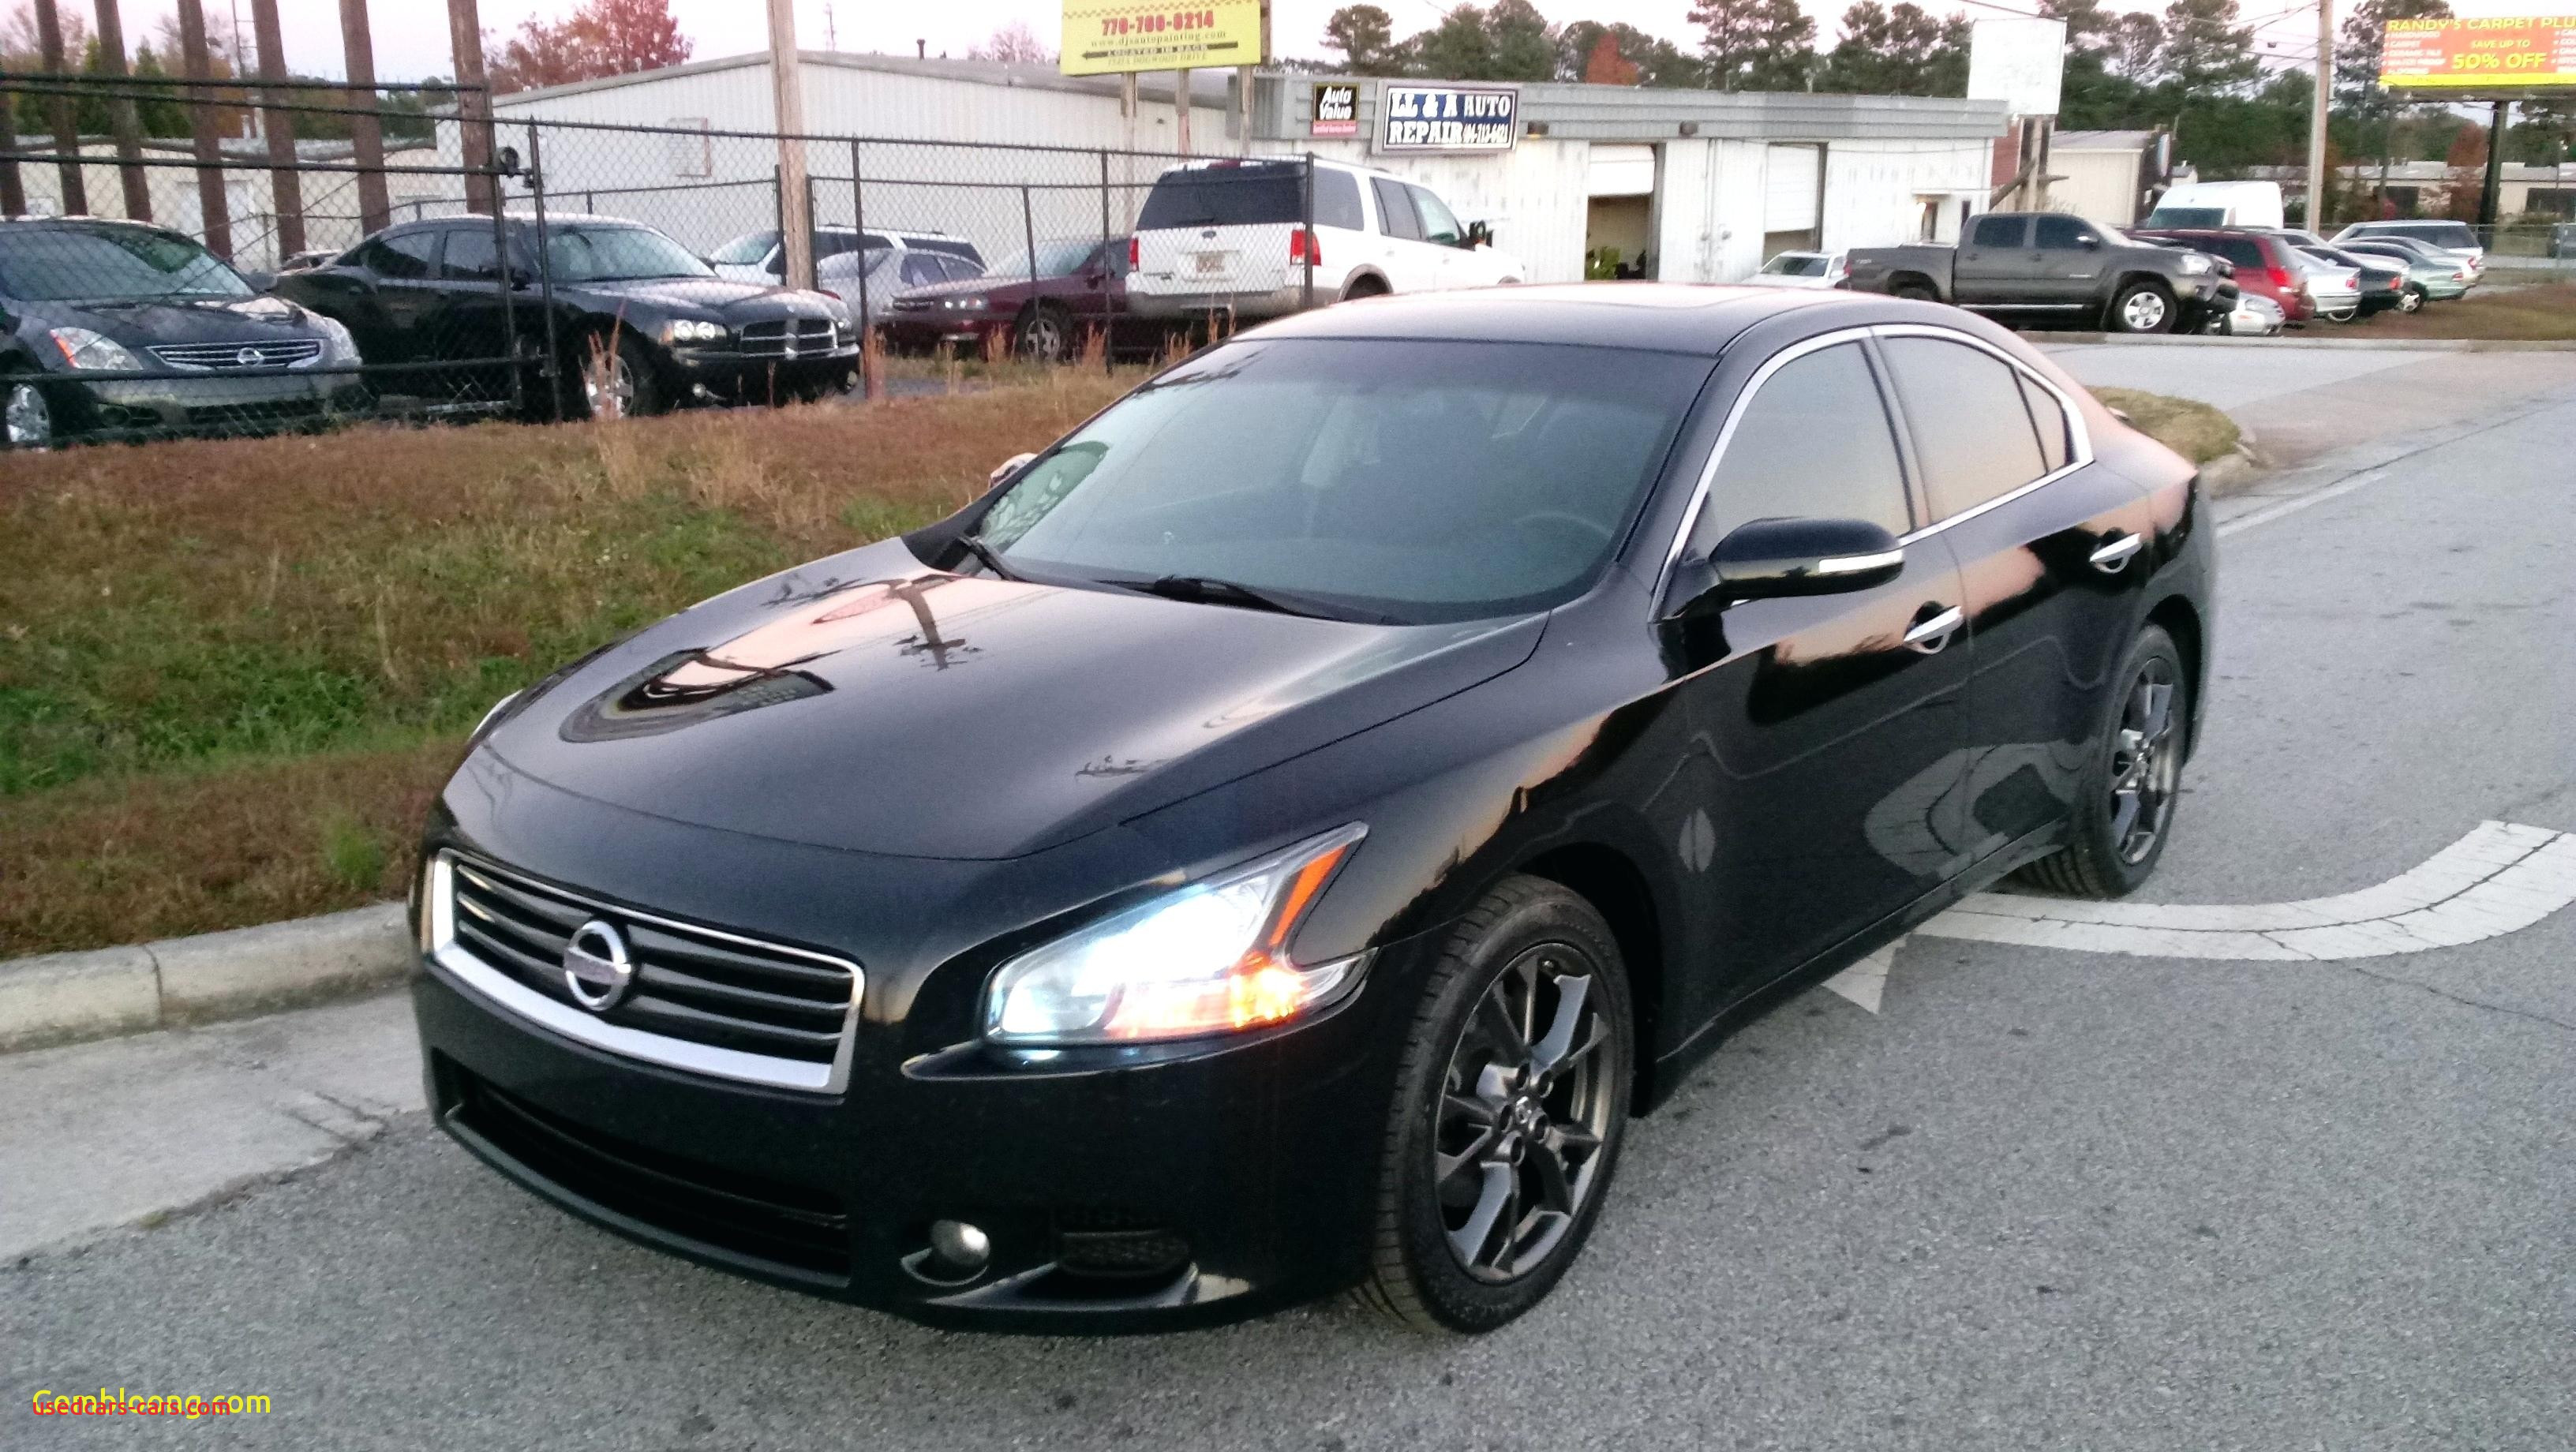 used cars for sale near me under 2000 dollars